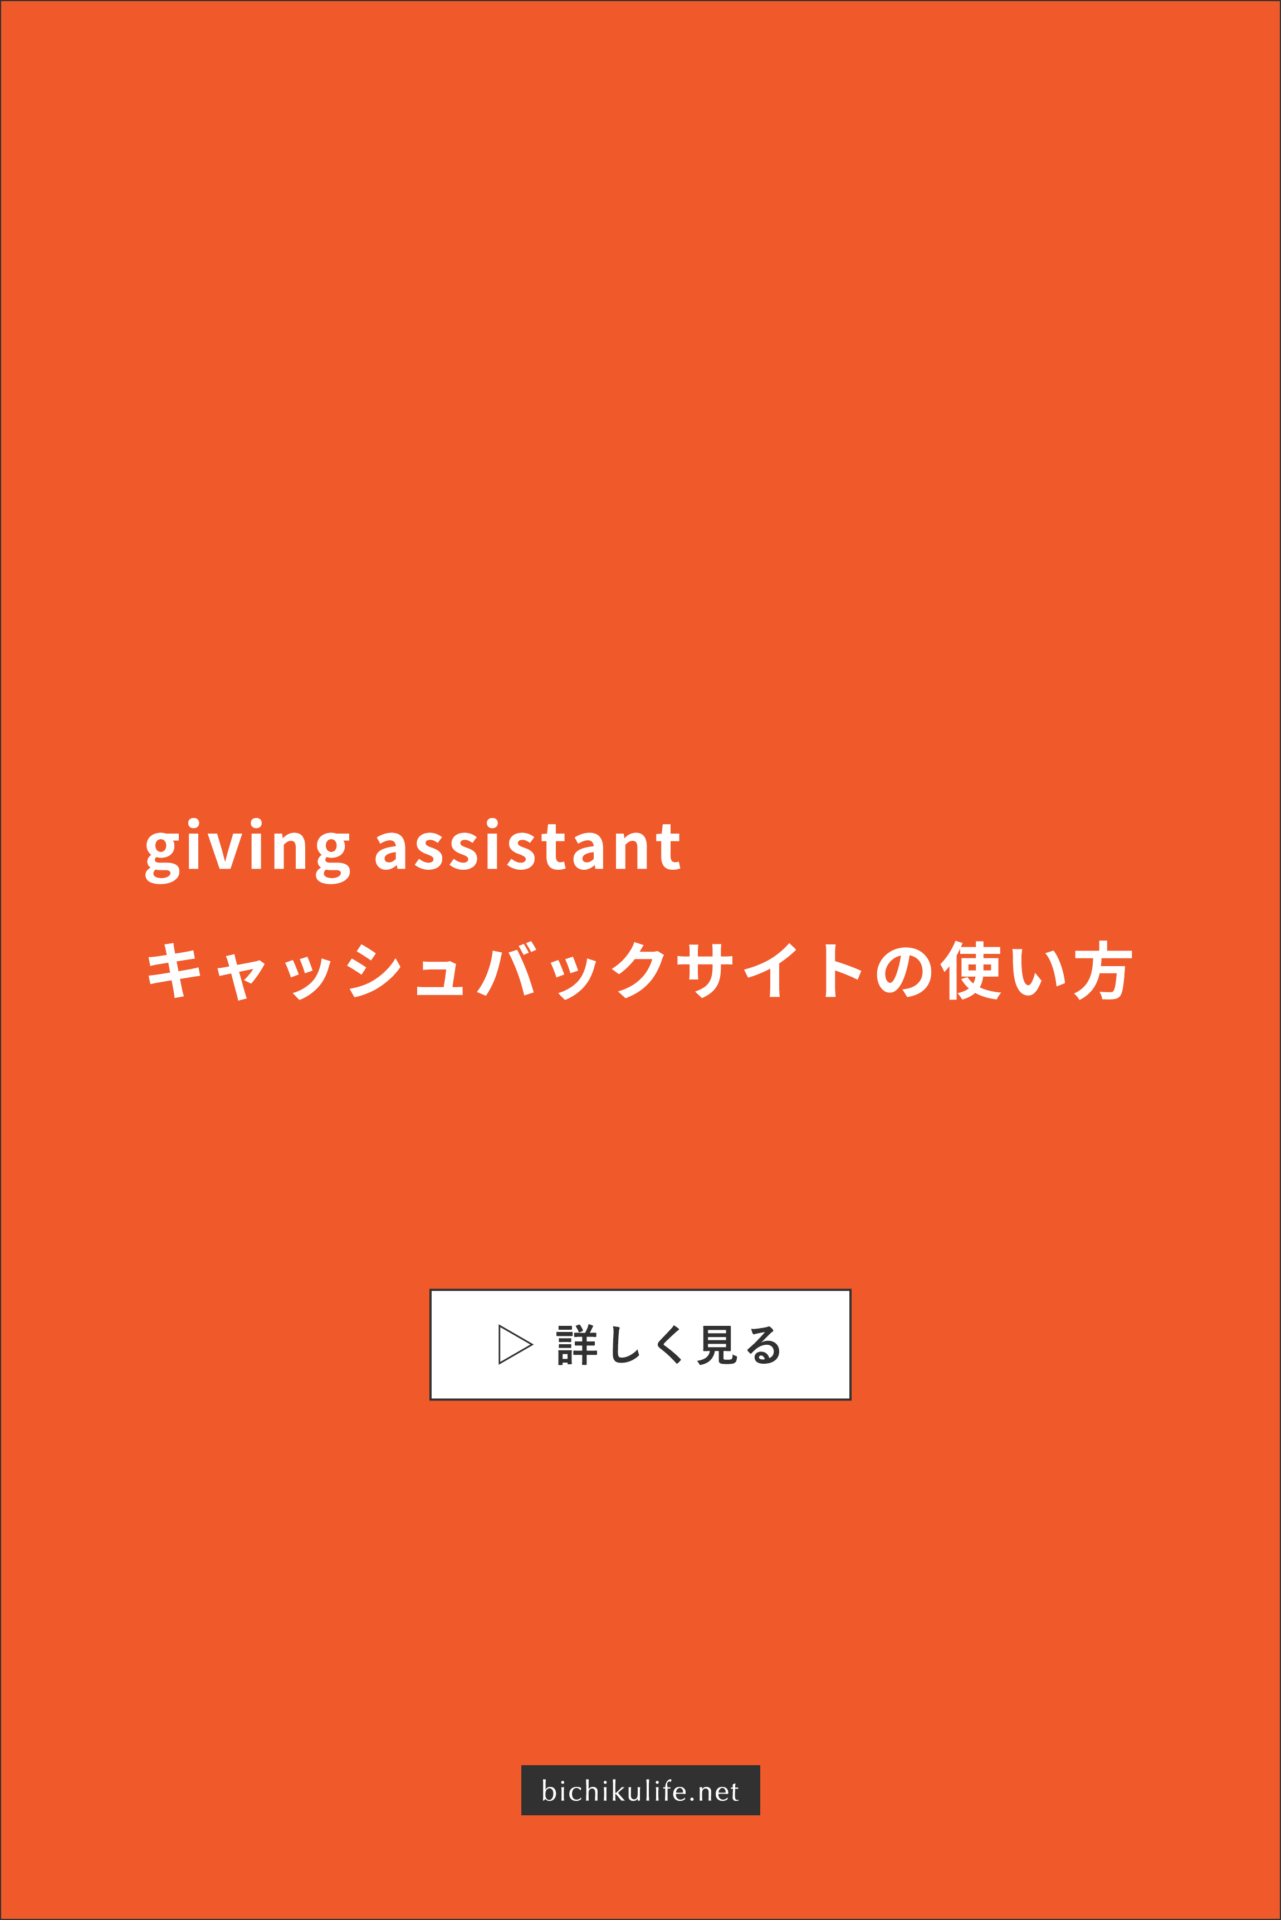 giving assistant(ギビングアシスタント)の使い方